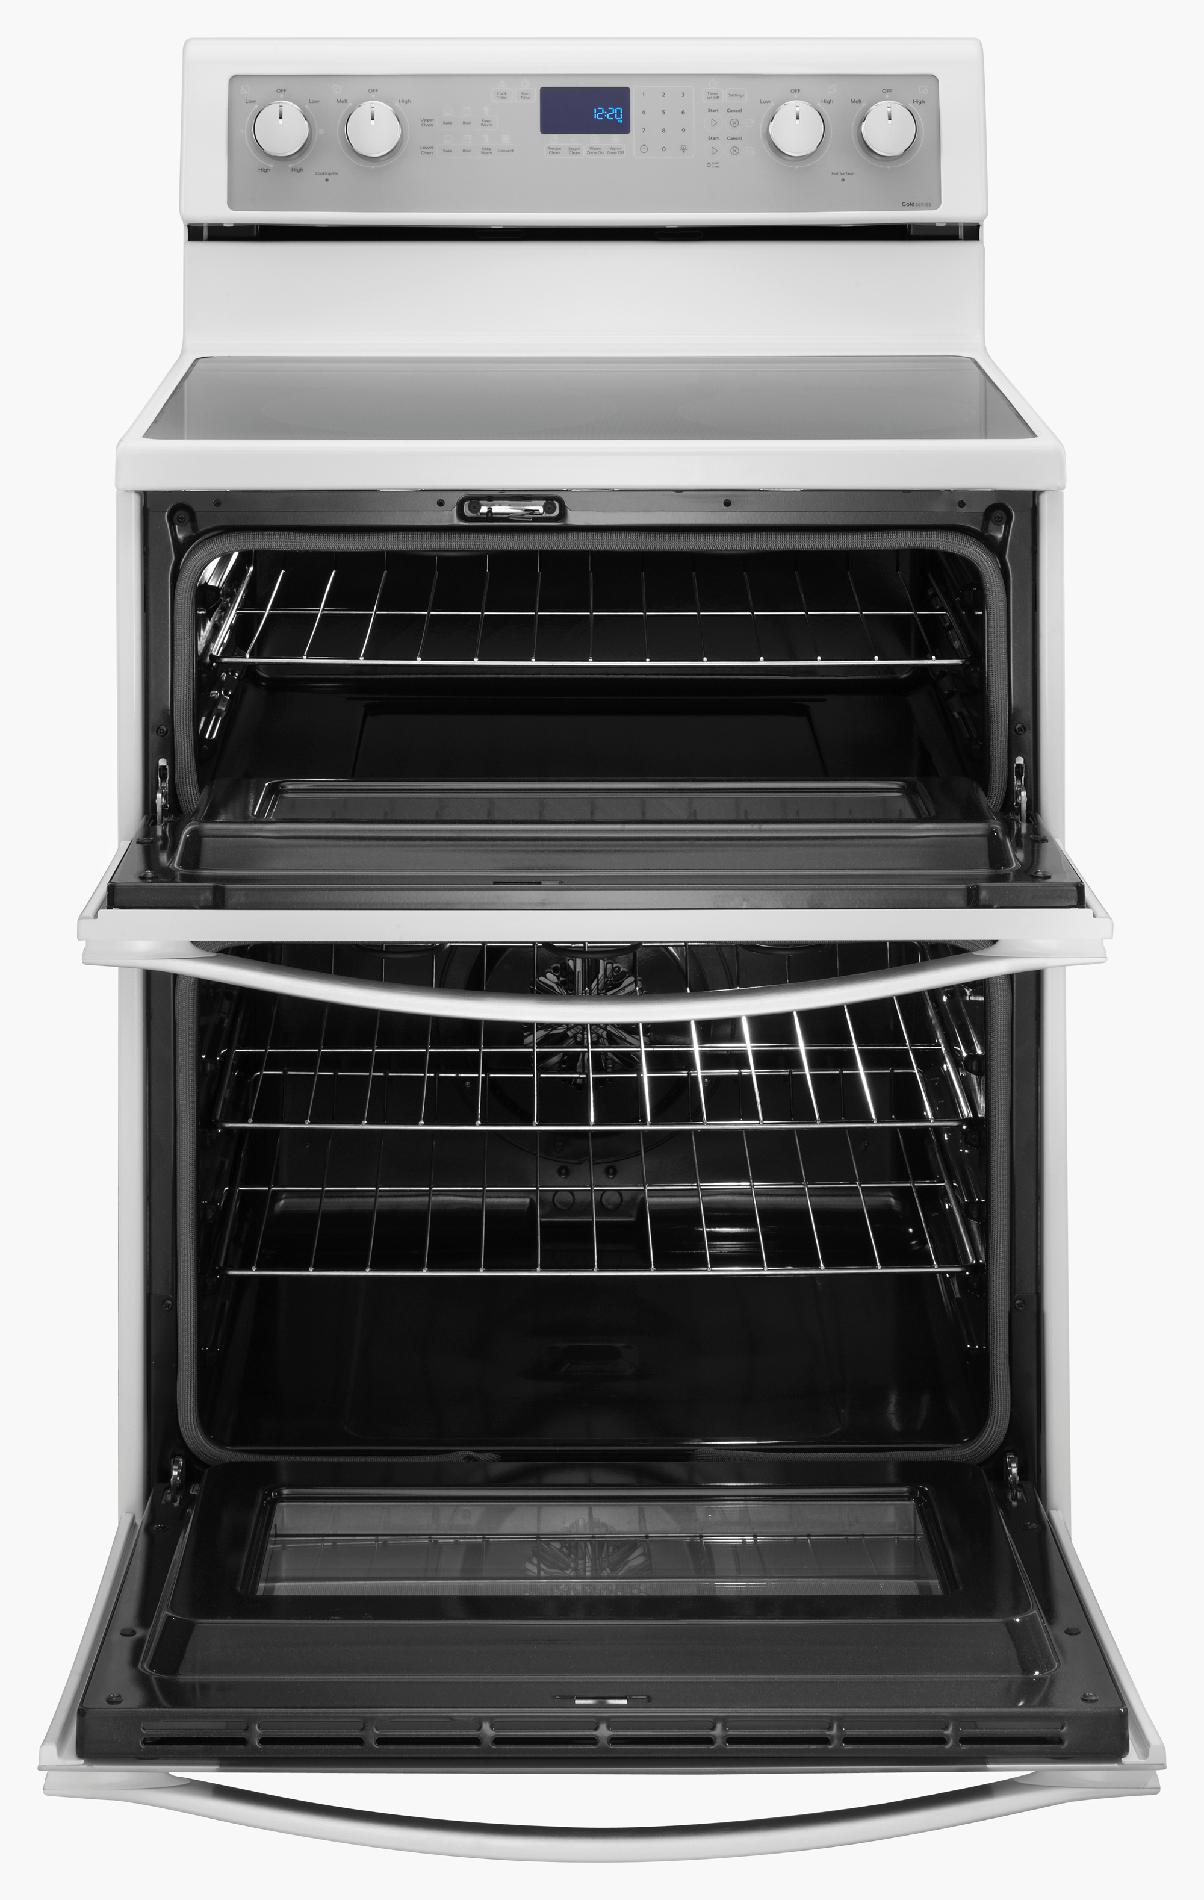 "Whirlpool WGE755C0BH 30"" Electric Range w/ AccuBake® System - White Ice"